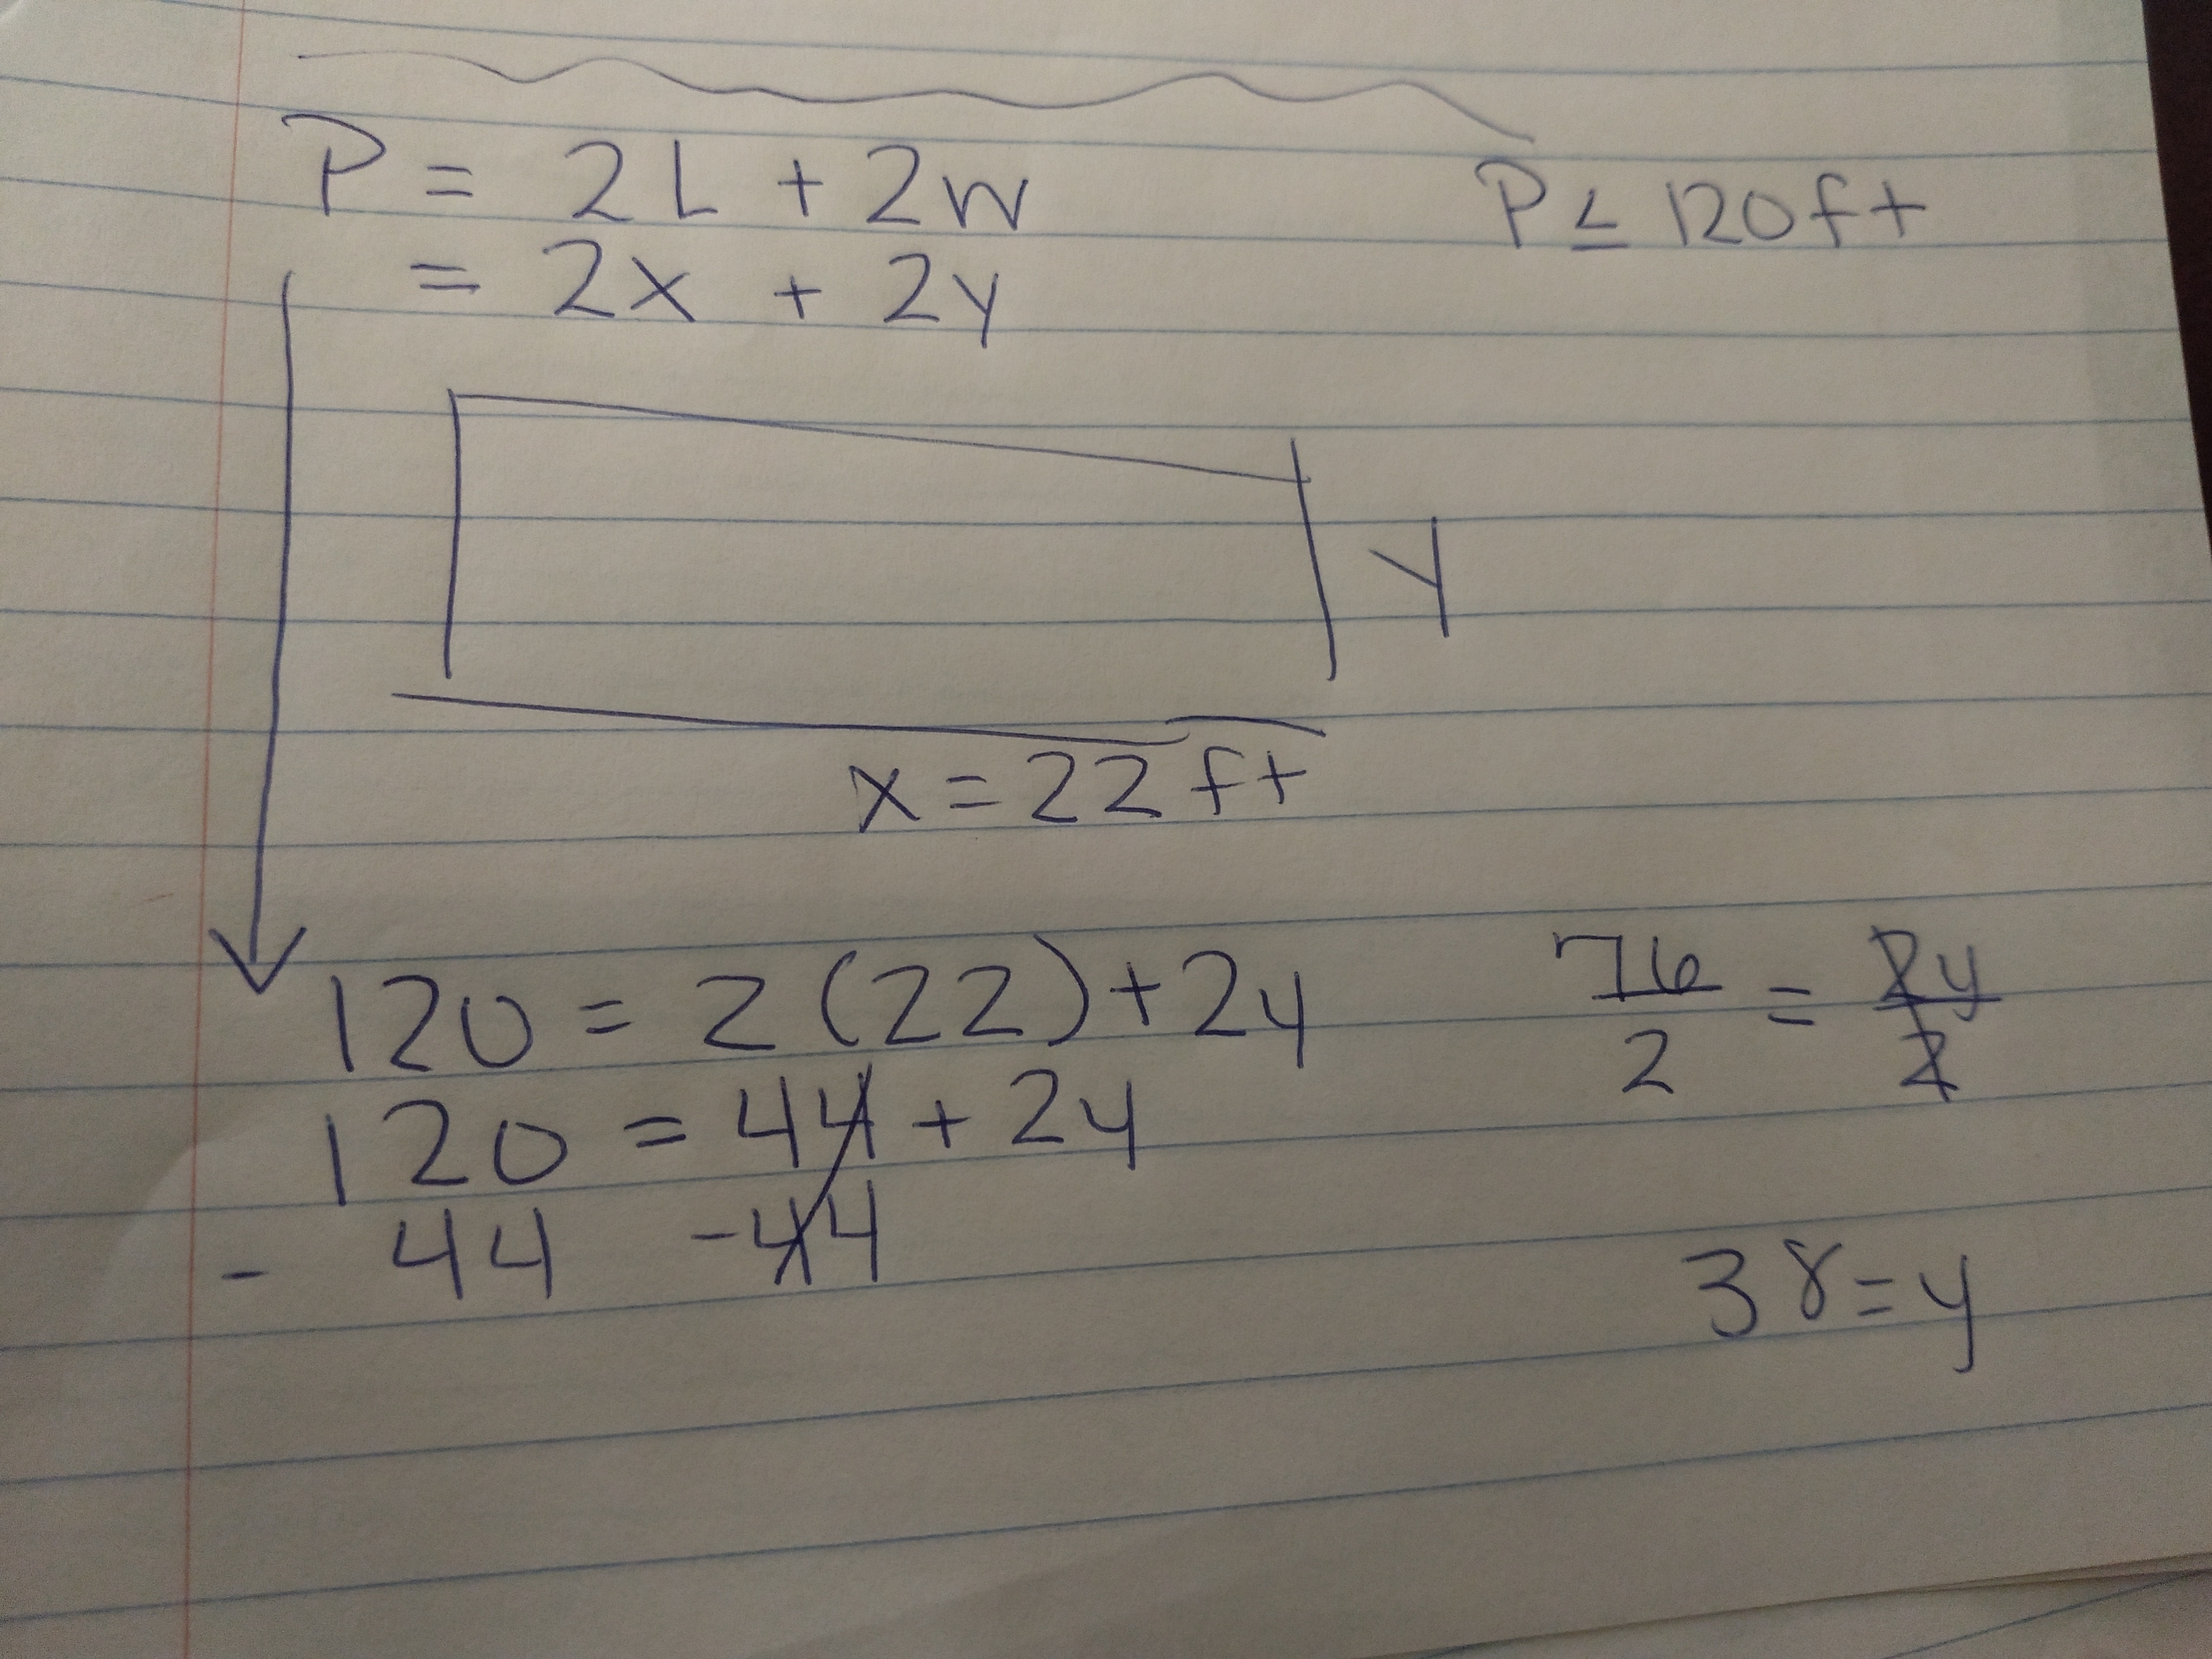 Adam Is Building A Rectangular Swimming Pool The Perimeter Of The Pool Must Be No More Than 120 Feet If The Length Of The Pool Is 22 Feet Write And Solve